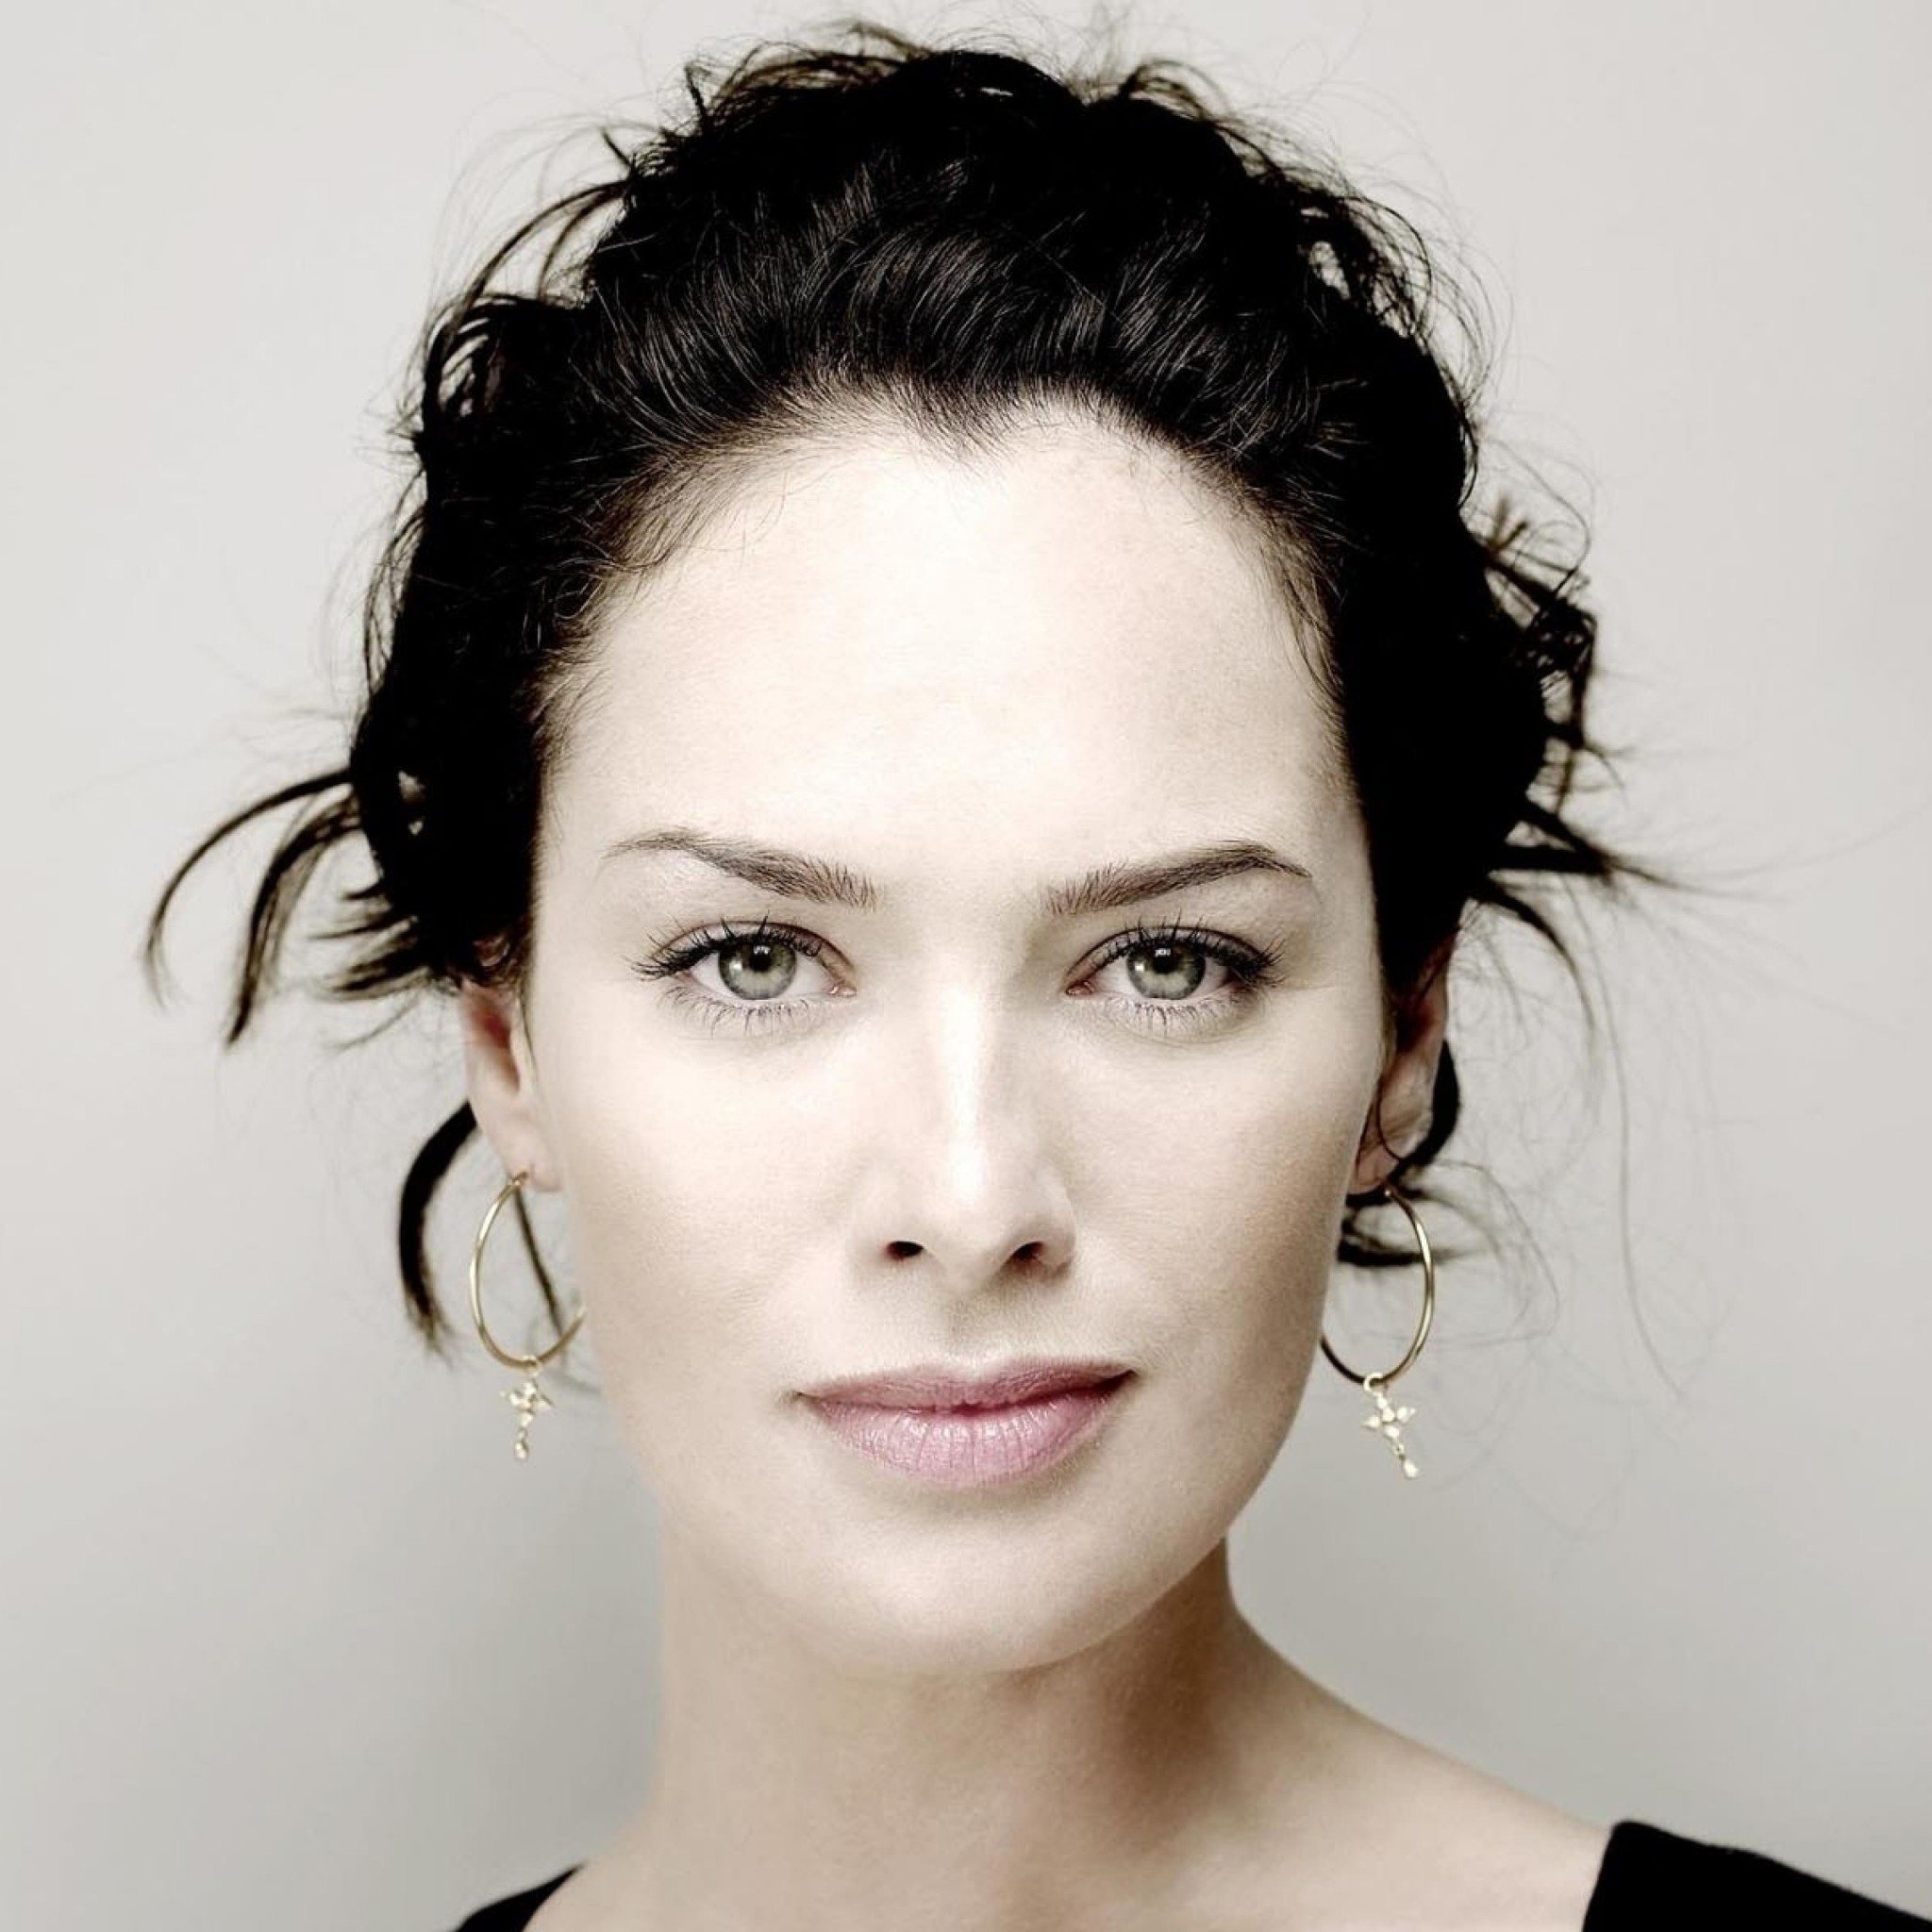 Lena Headey Portrait Wallpaper for Google Nexus 9